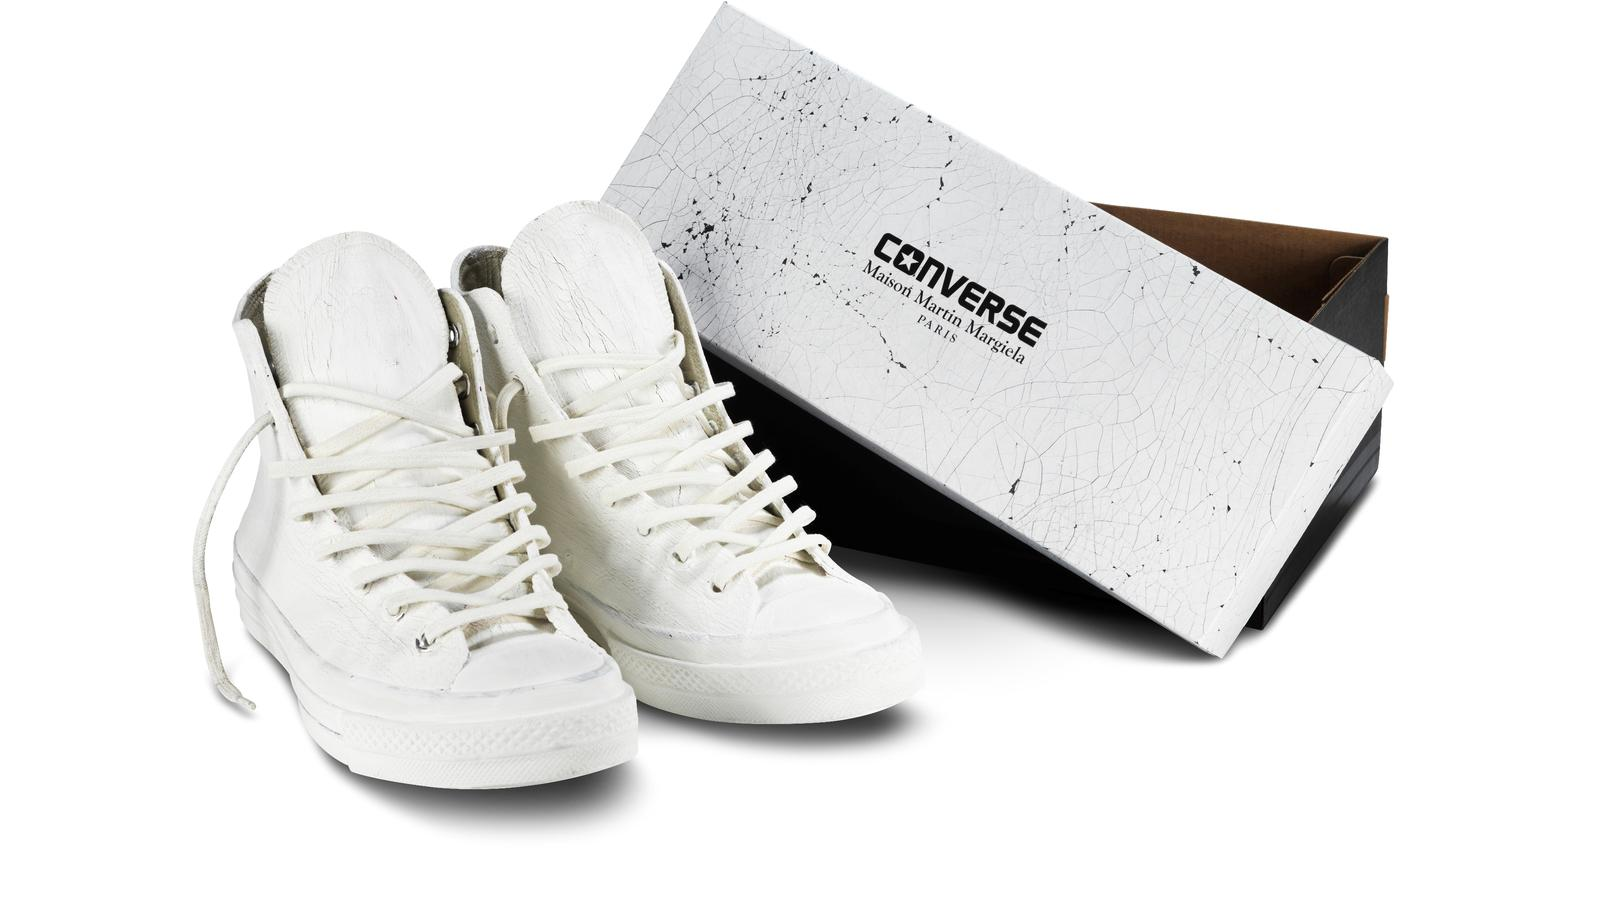 Converse X Mmm Chuck Taylor All Star Box Original